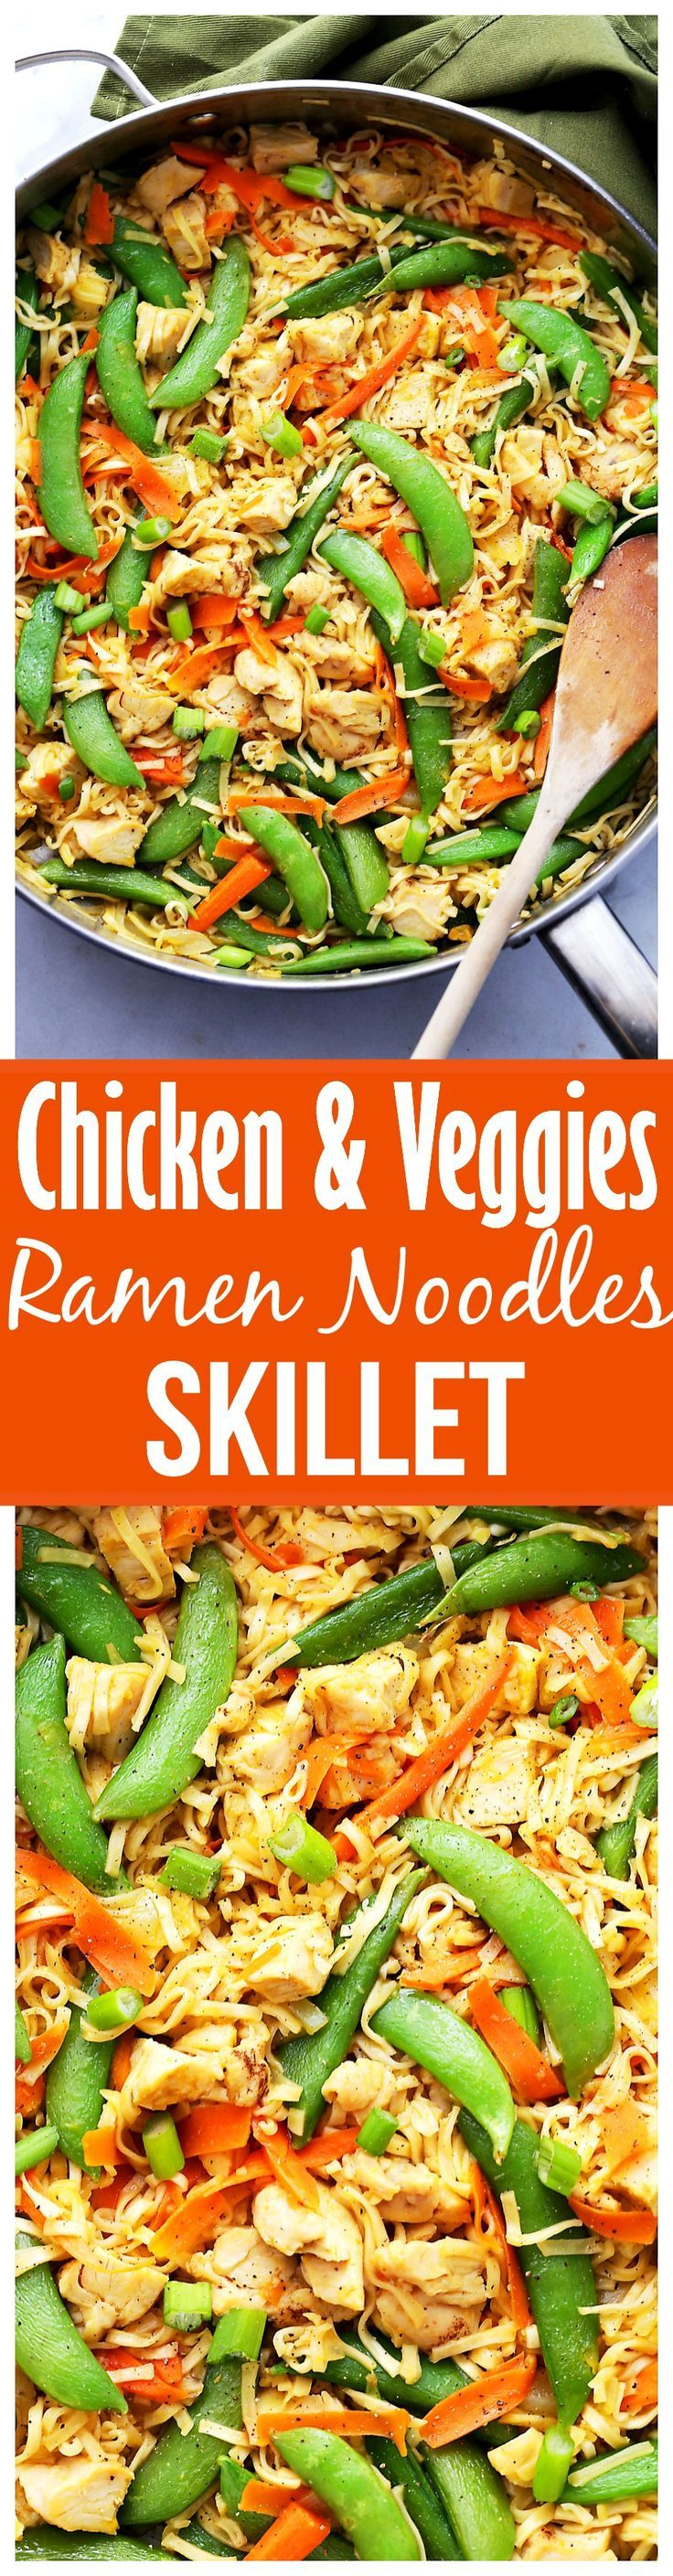 Chicken and Veggies Ramen Noodles Skillet – Delicious ramen noodles tossed with leftover chicken, carrots and snap peas make for an easy and super quick weeknight meal.